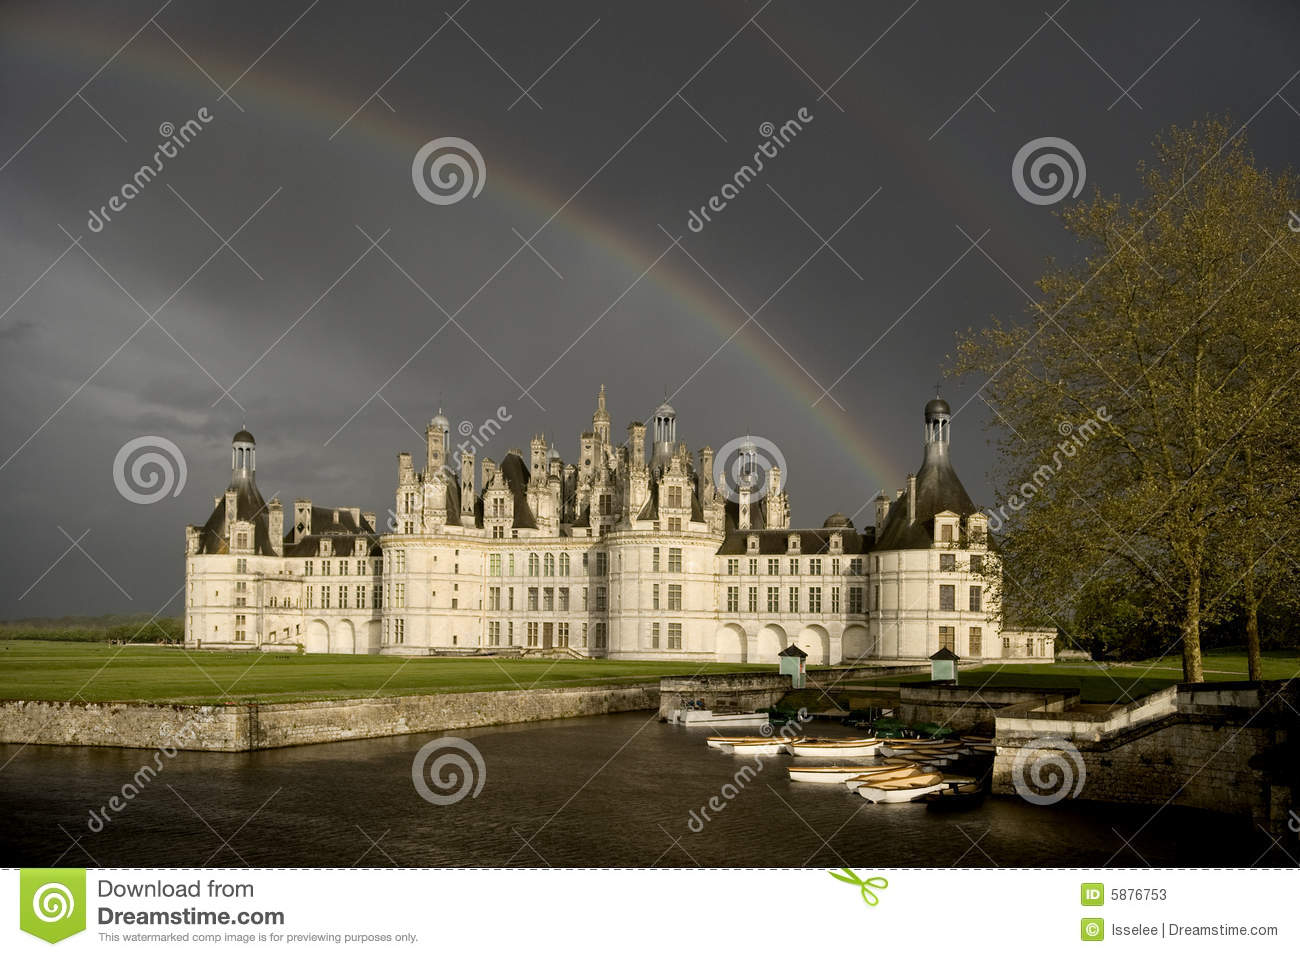 Castle of Chambord